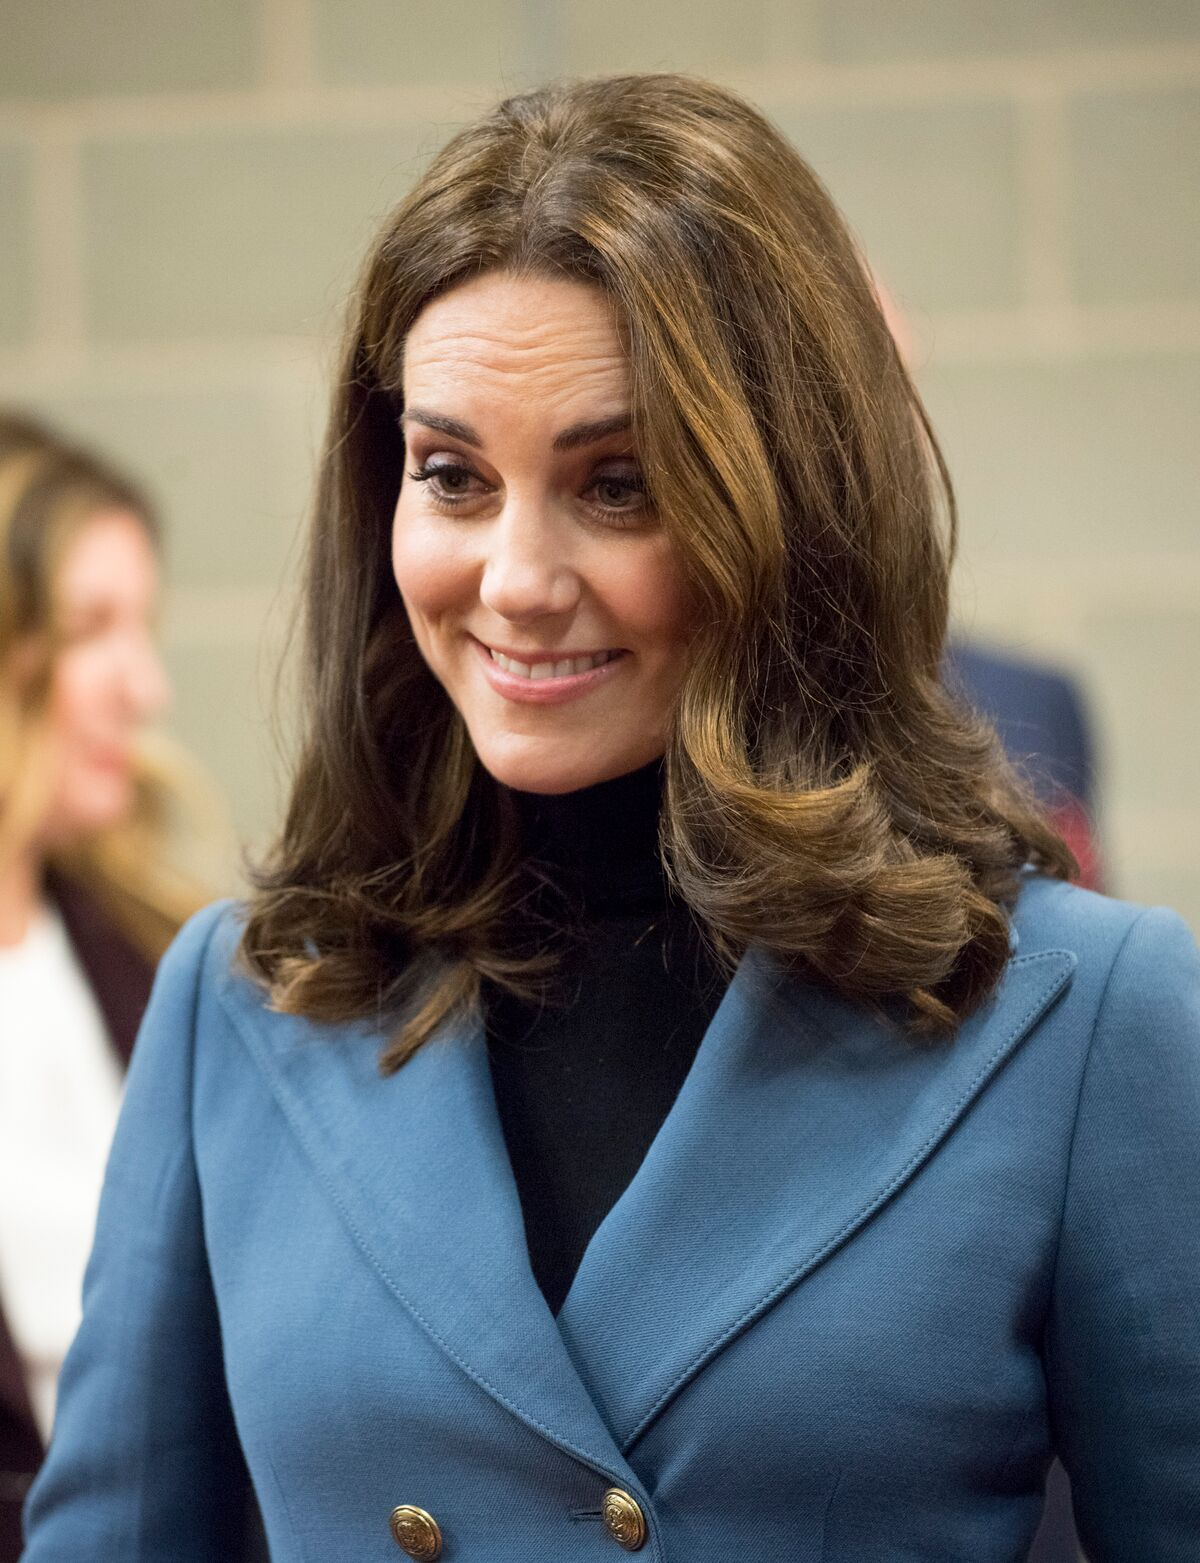 Kate Middleton assiste à la cérémonie de remise de diplômes de Coach Core pour plus de 150 apprentis Coach Core au Stade de Londres. | Photo : Getty Images